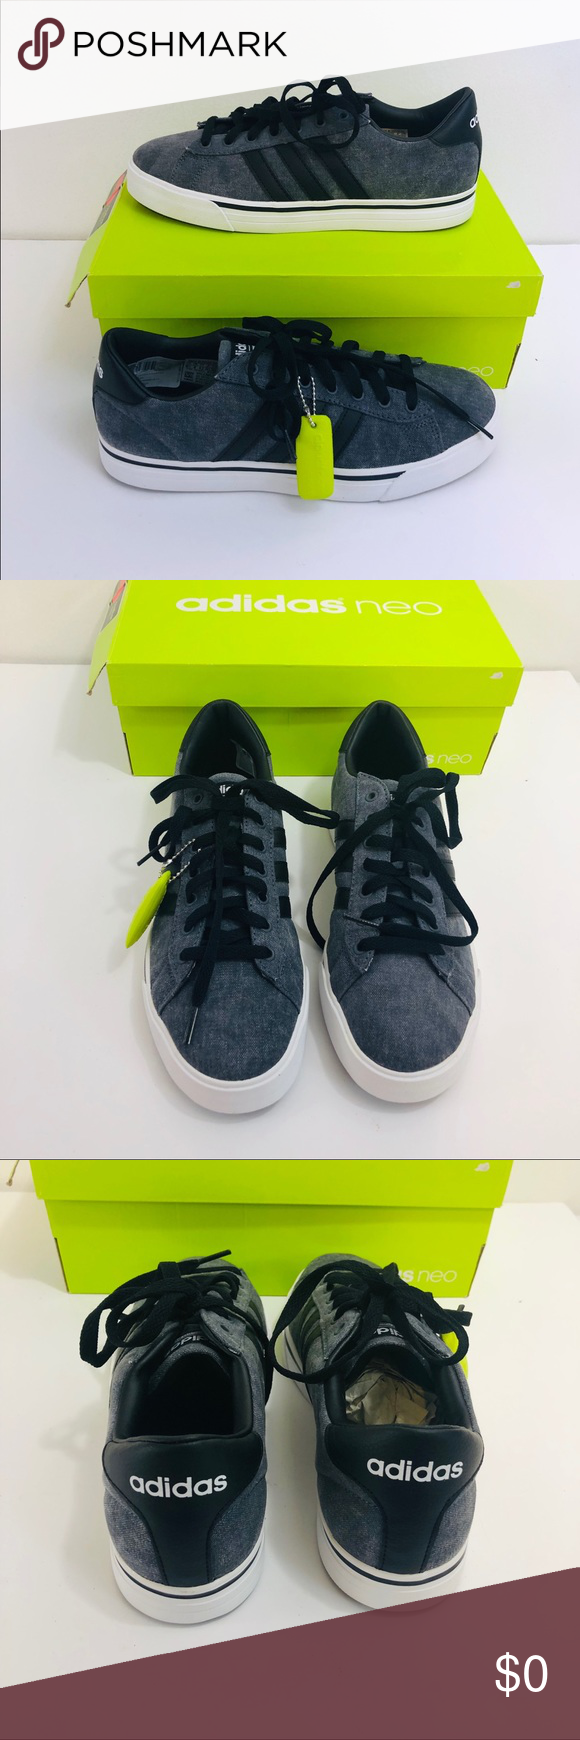 New in Box Adidas Cloudfoam Super Daily Sneaker. | Adidas ...